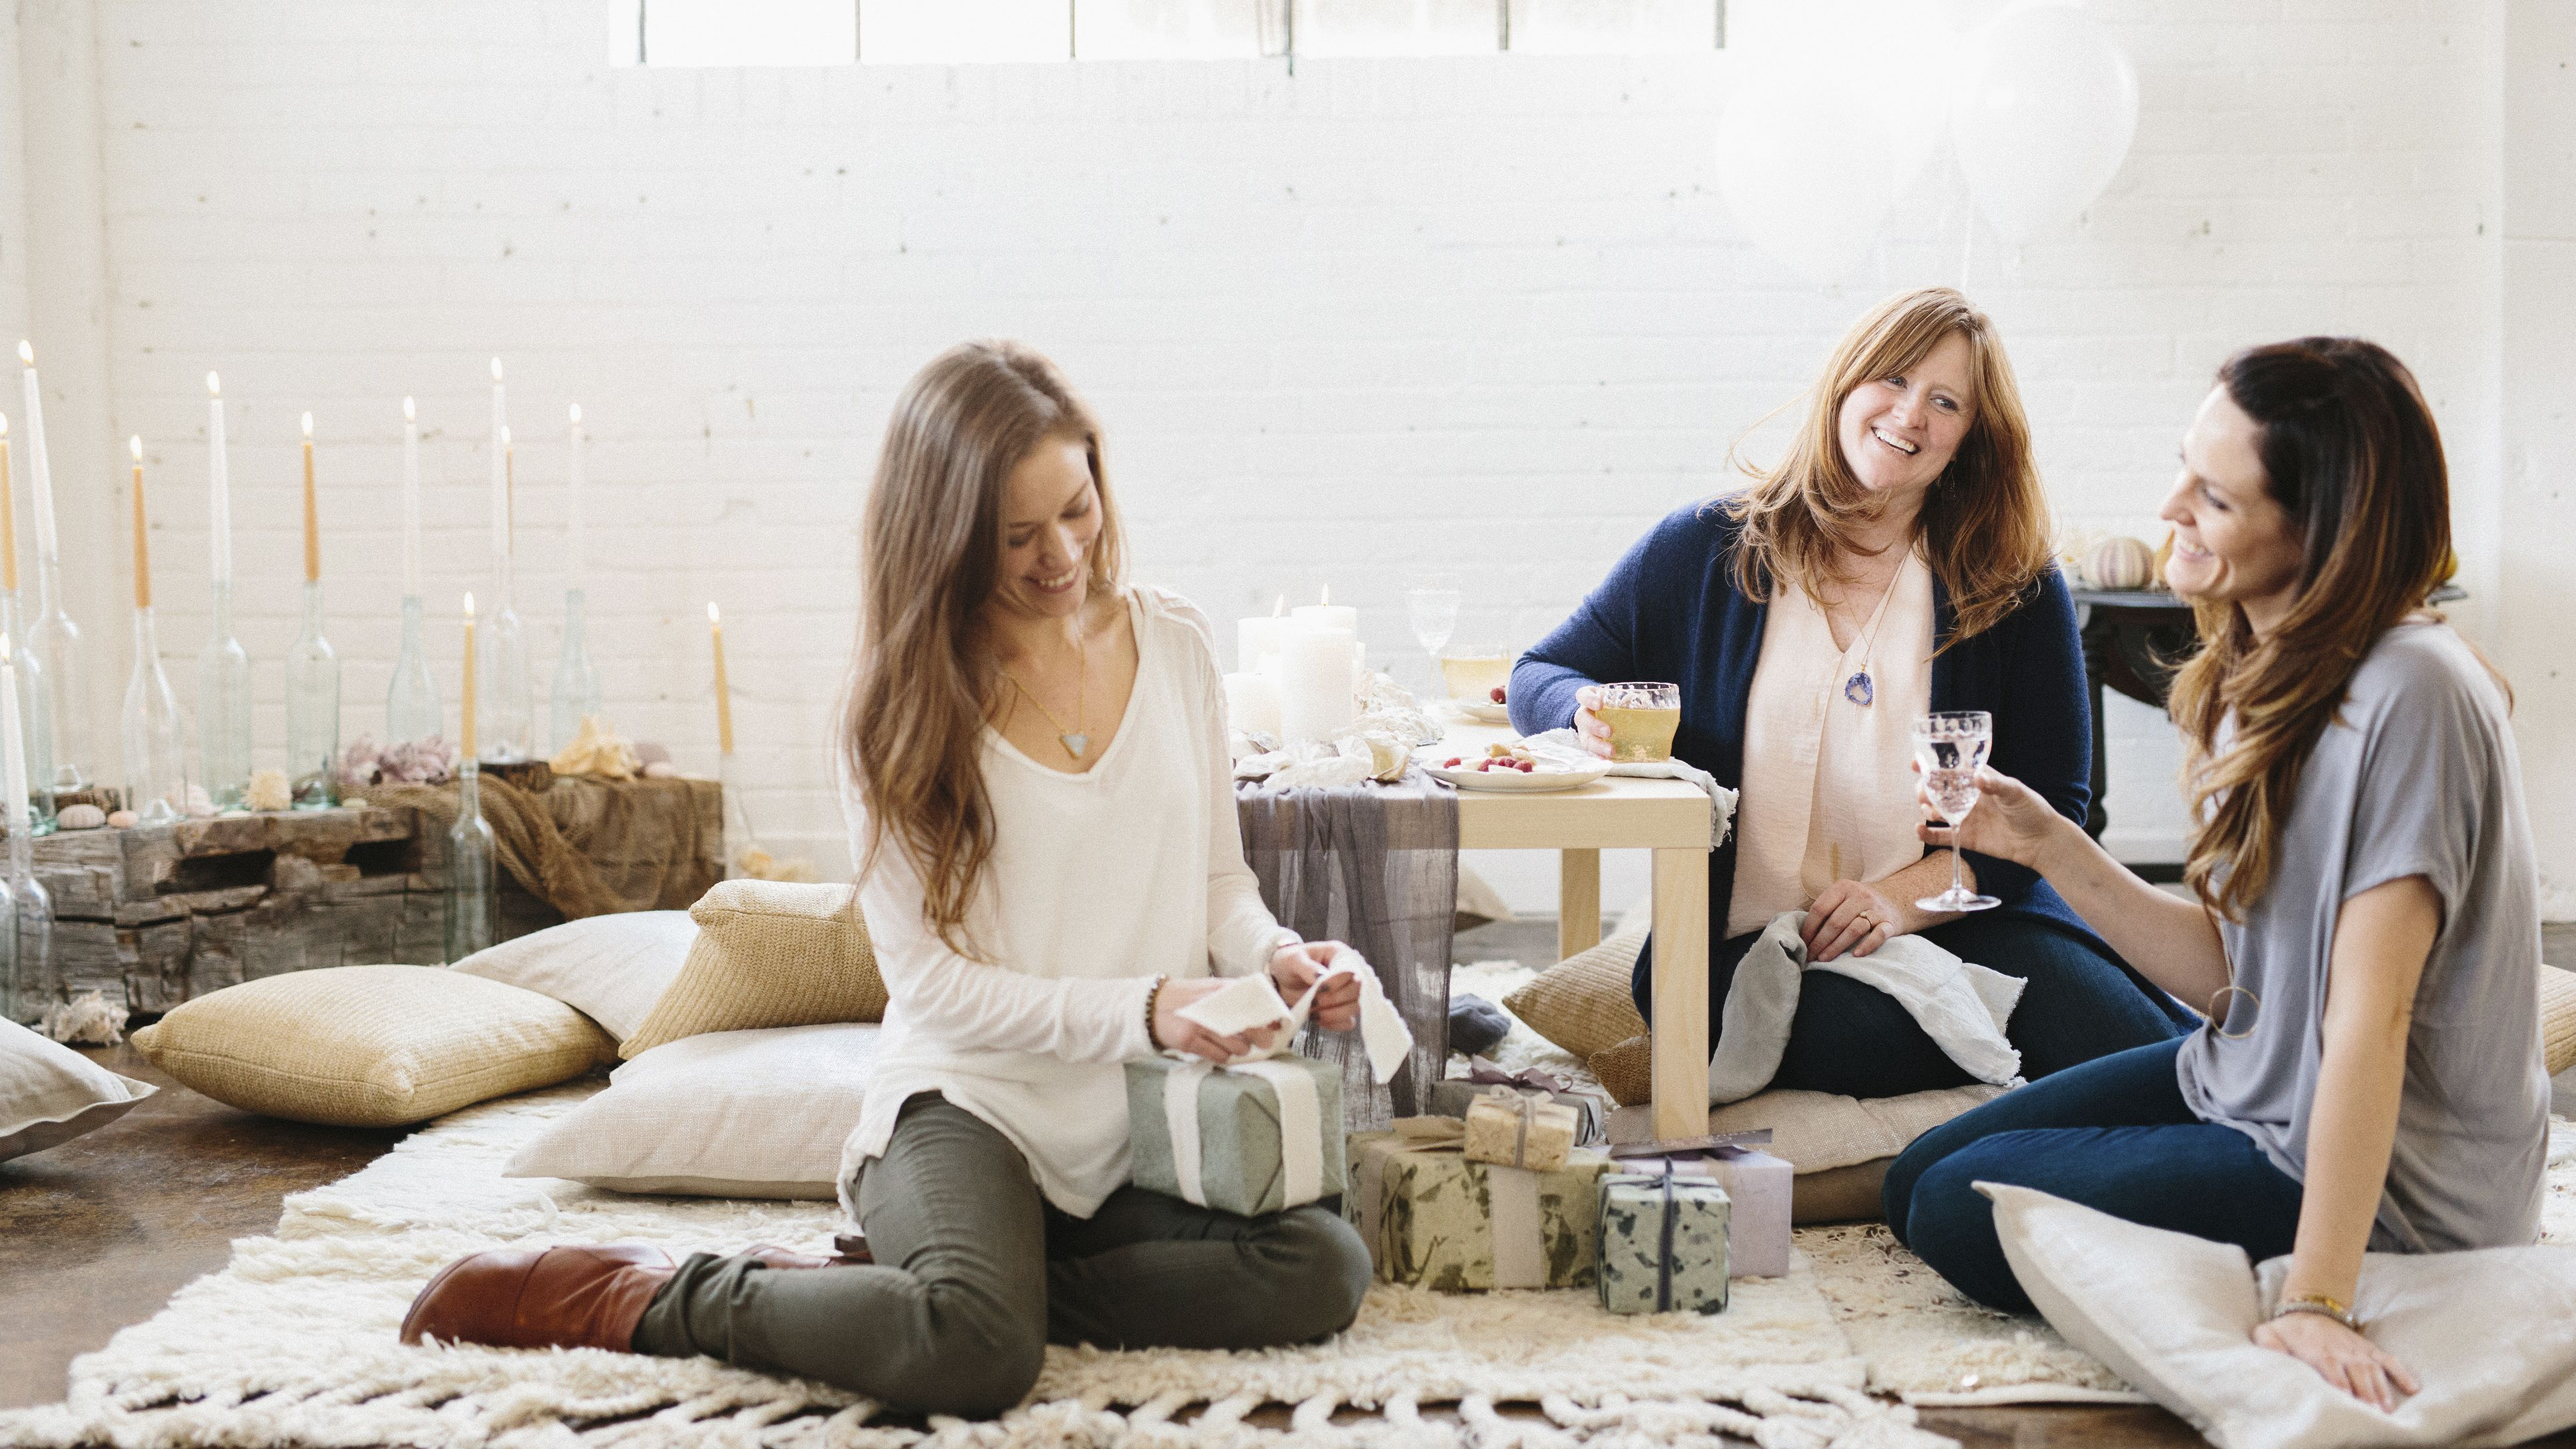 The 8 Best Birthday Gifts for Your Friend in 2019